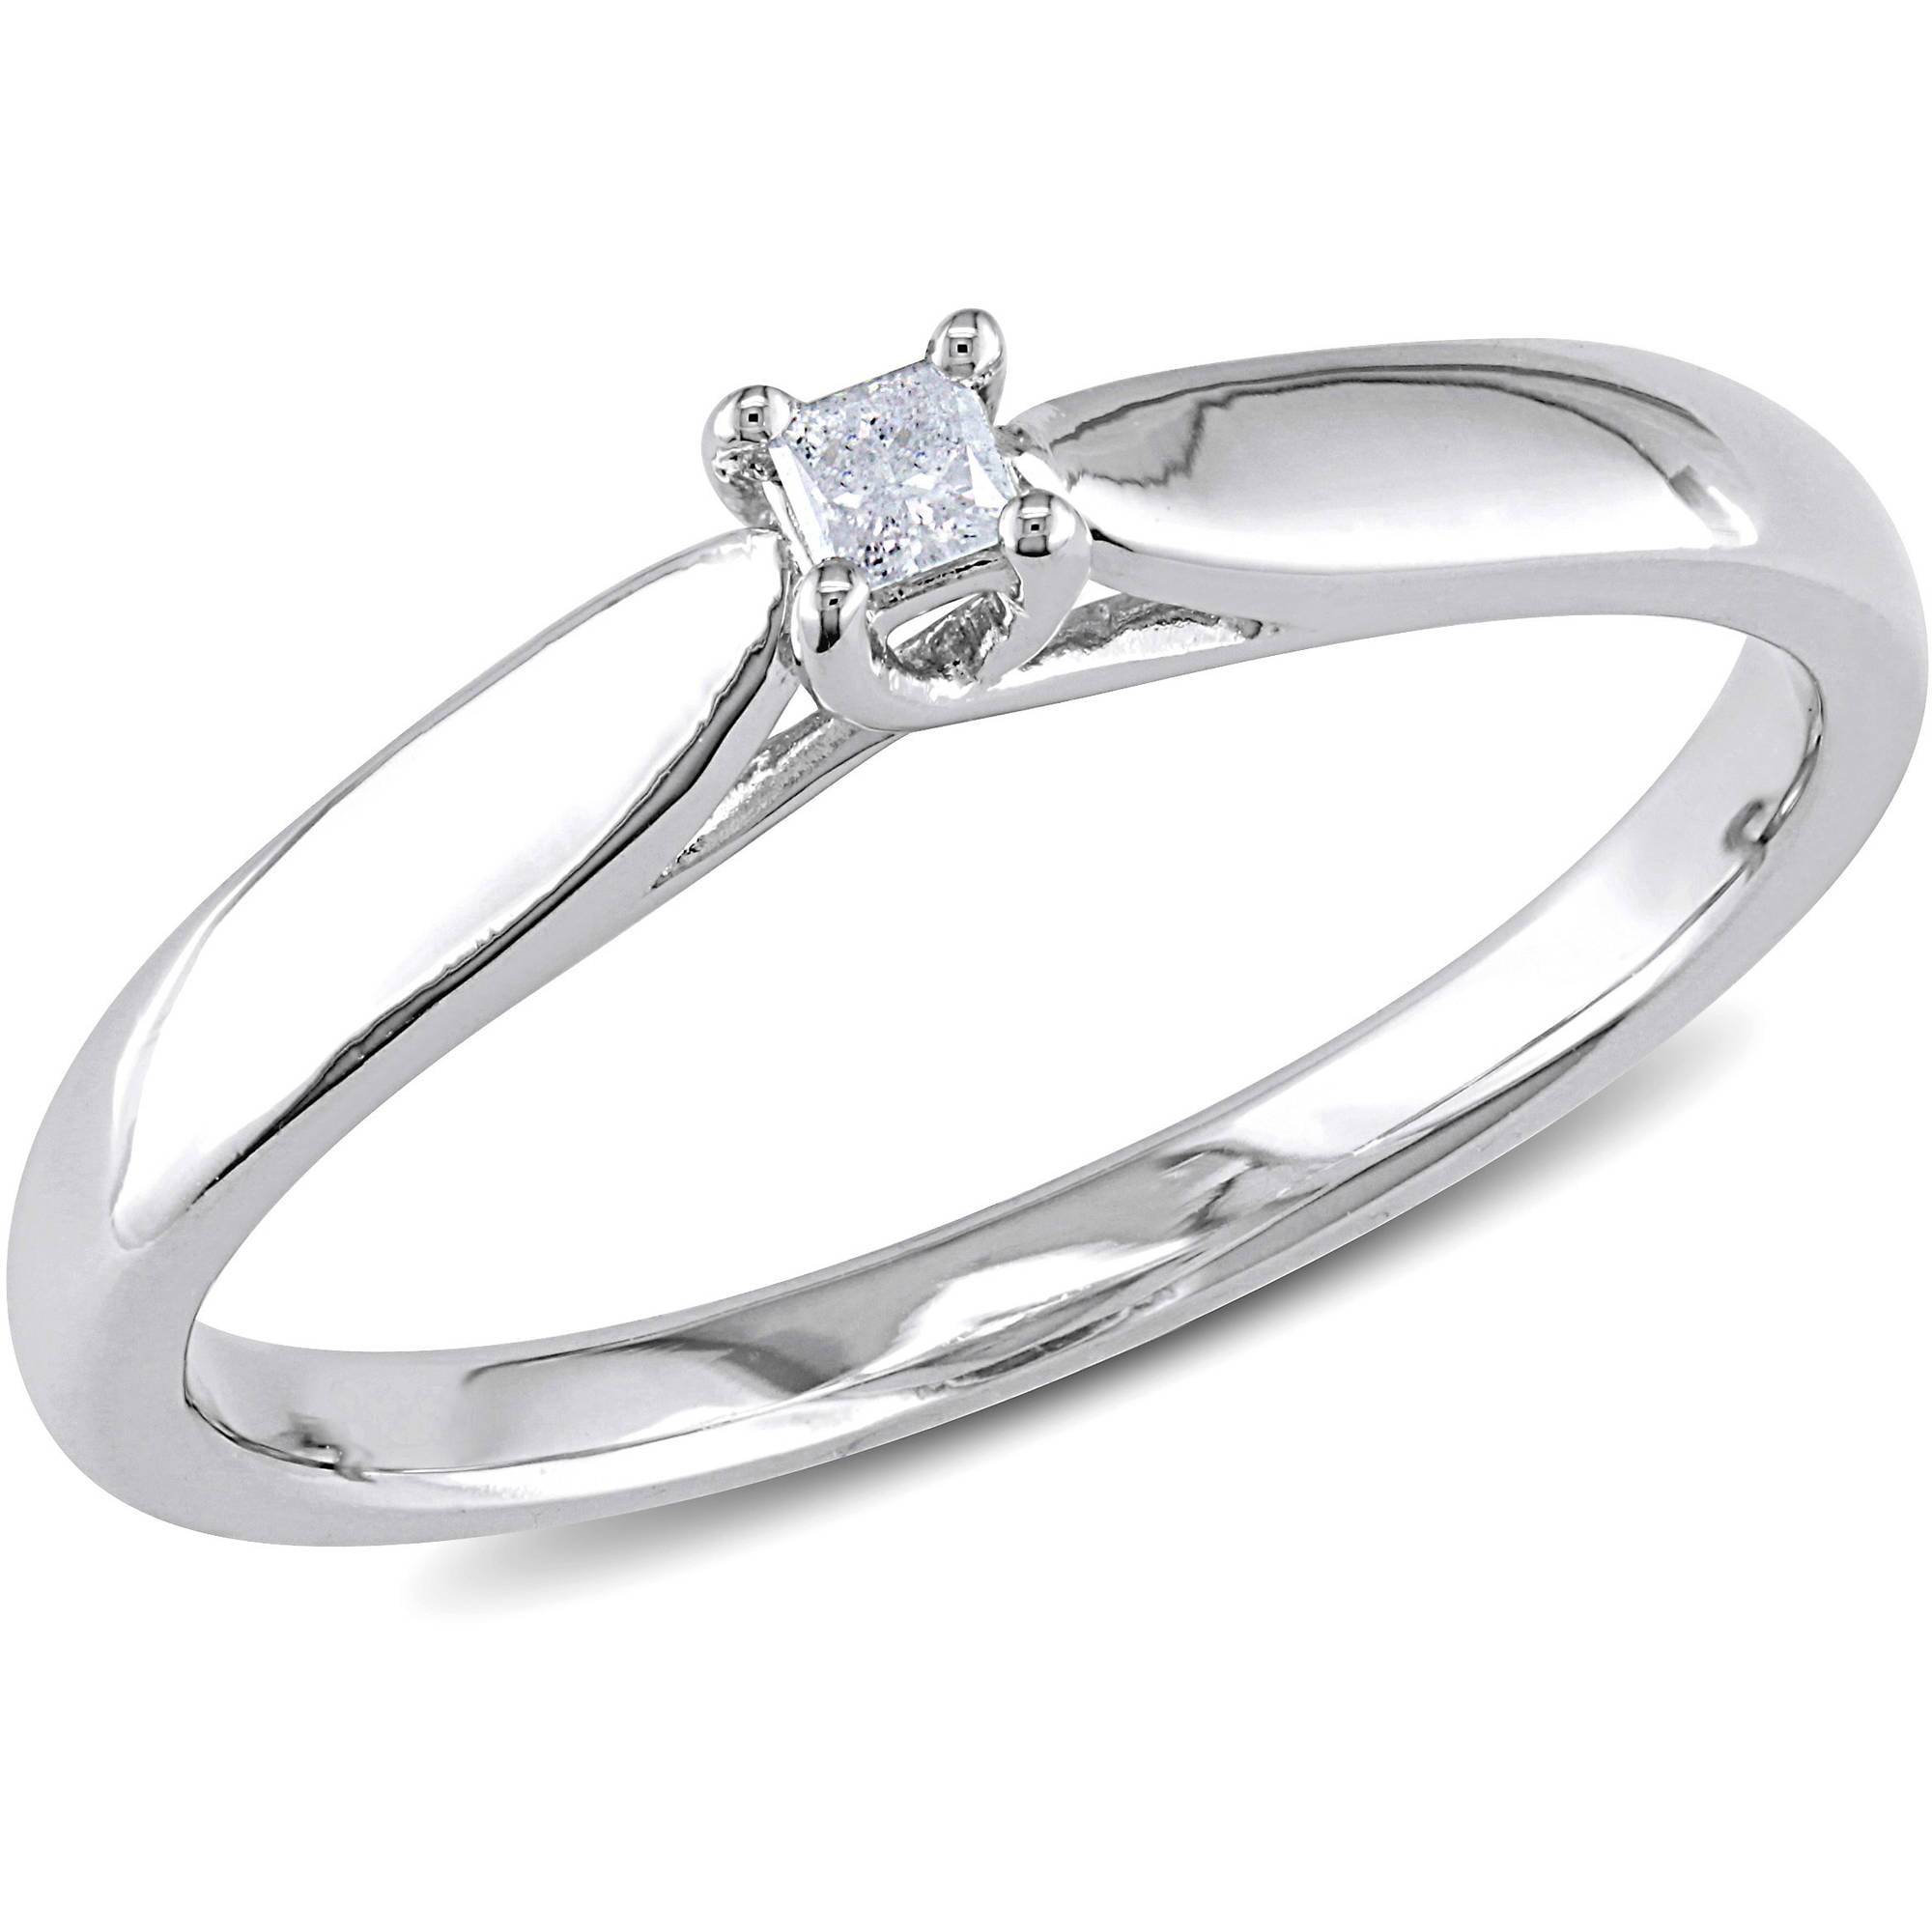 setting old jewelry about the school learn settings pave ring rings all meaning in diamond wedding world